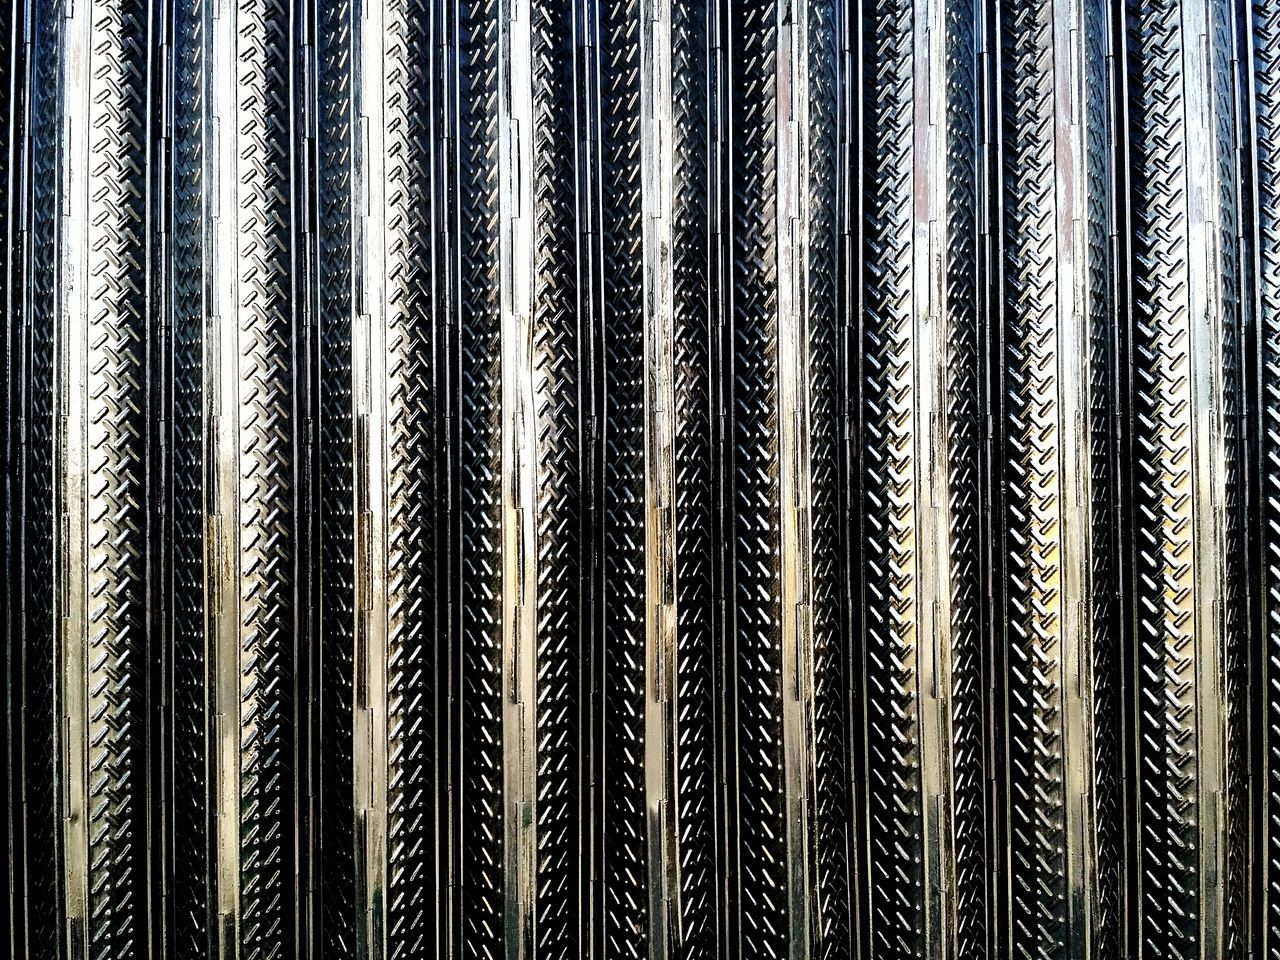 Door. Door Door Designs Door Plate Door Picture Pattern Metal Steel Steel Color Steel Design Lines Lines And Shapes Door Plates Eyeem Philippines Eyeem Photography The Week On EyeEm Showcase: February Black Silver  Pyramid Triangle Parallel Lines